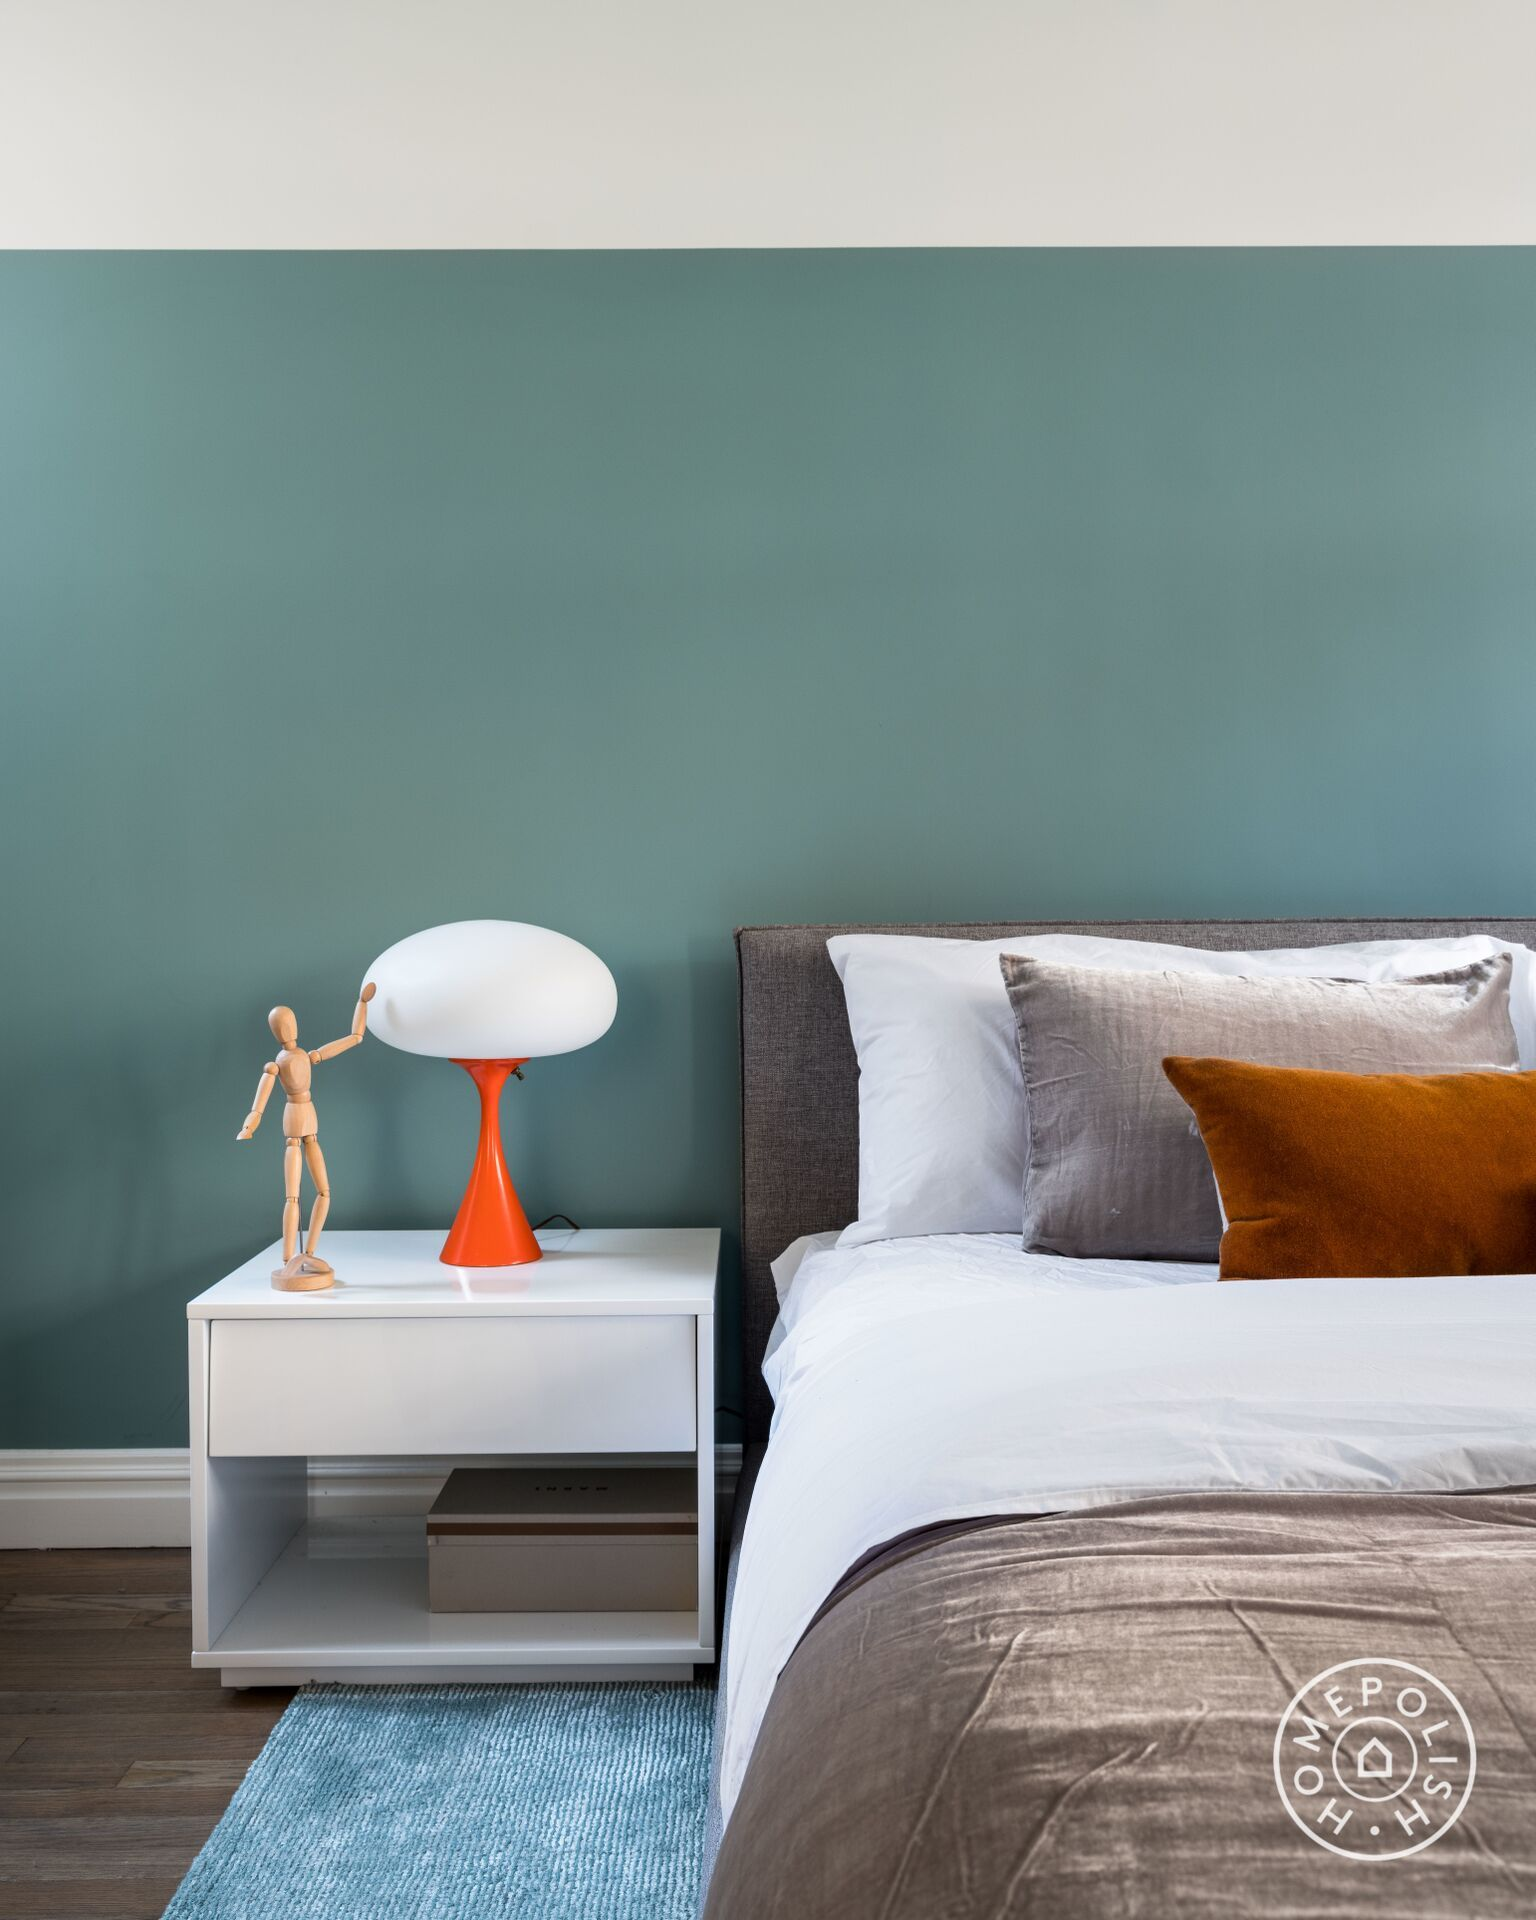 Couple Bedroom Design: Graphic Yet Graceful In Greenwich Village